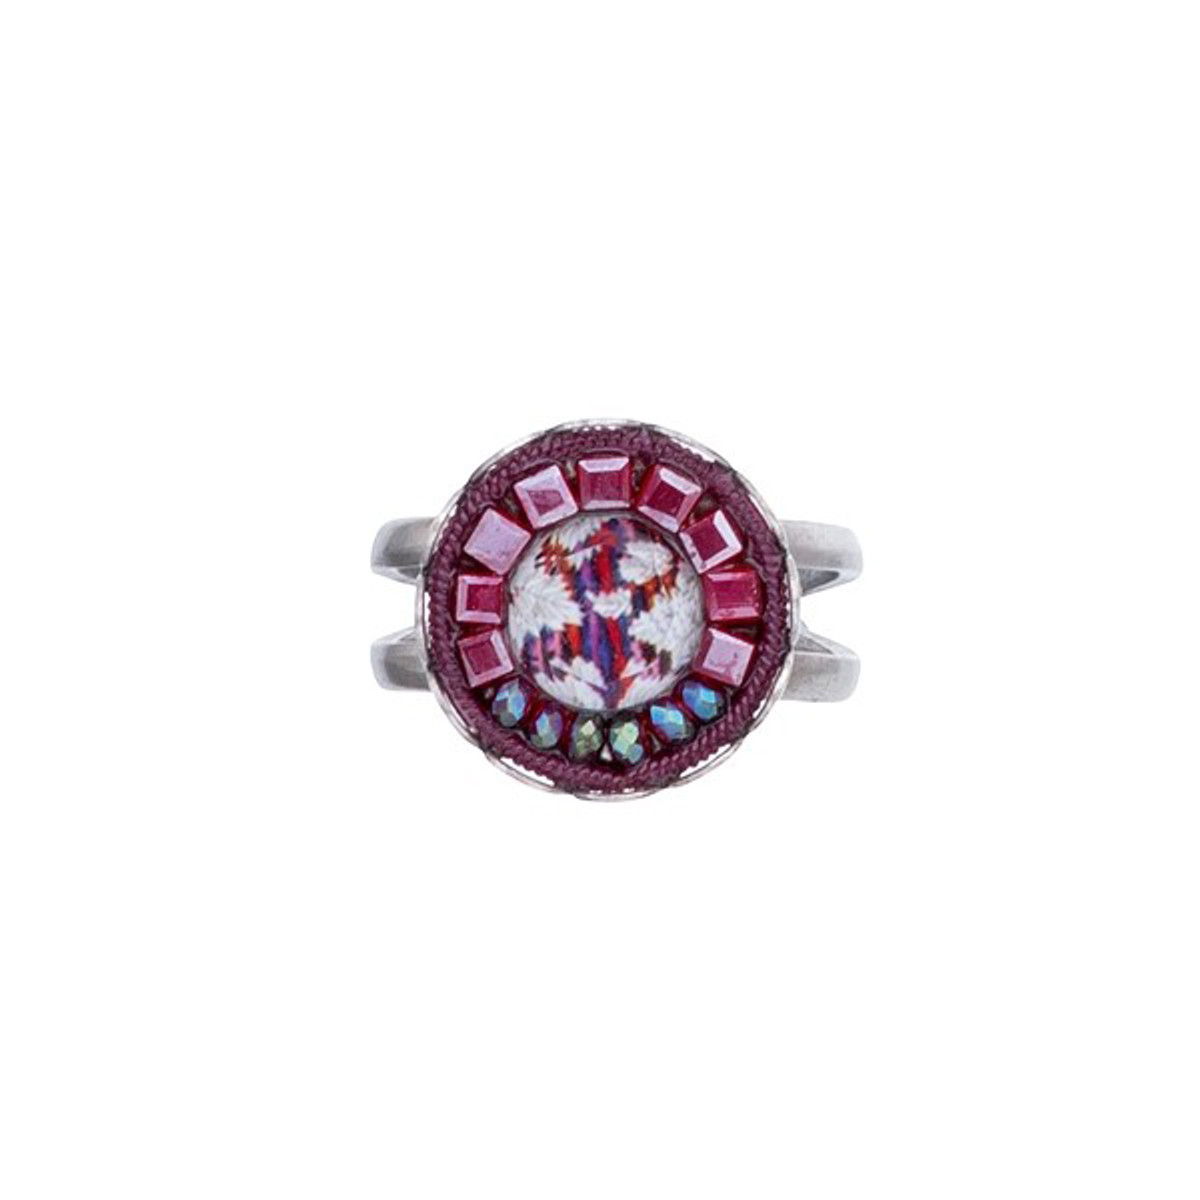 Ayala Bar Ruby Tuesday Adjustable Ring - New Arrival